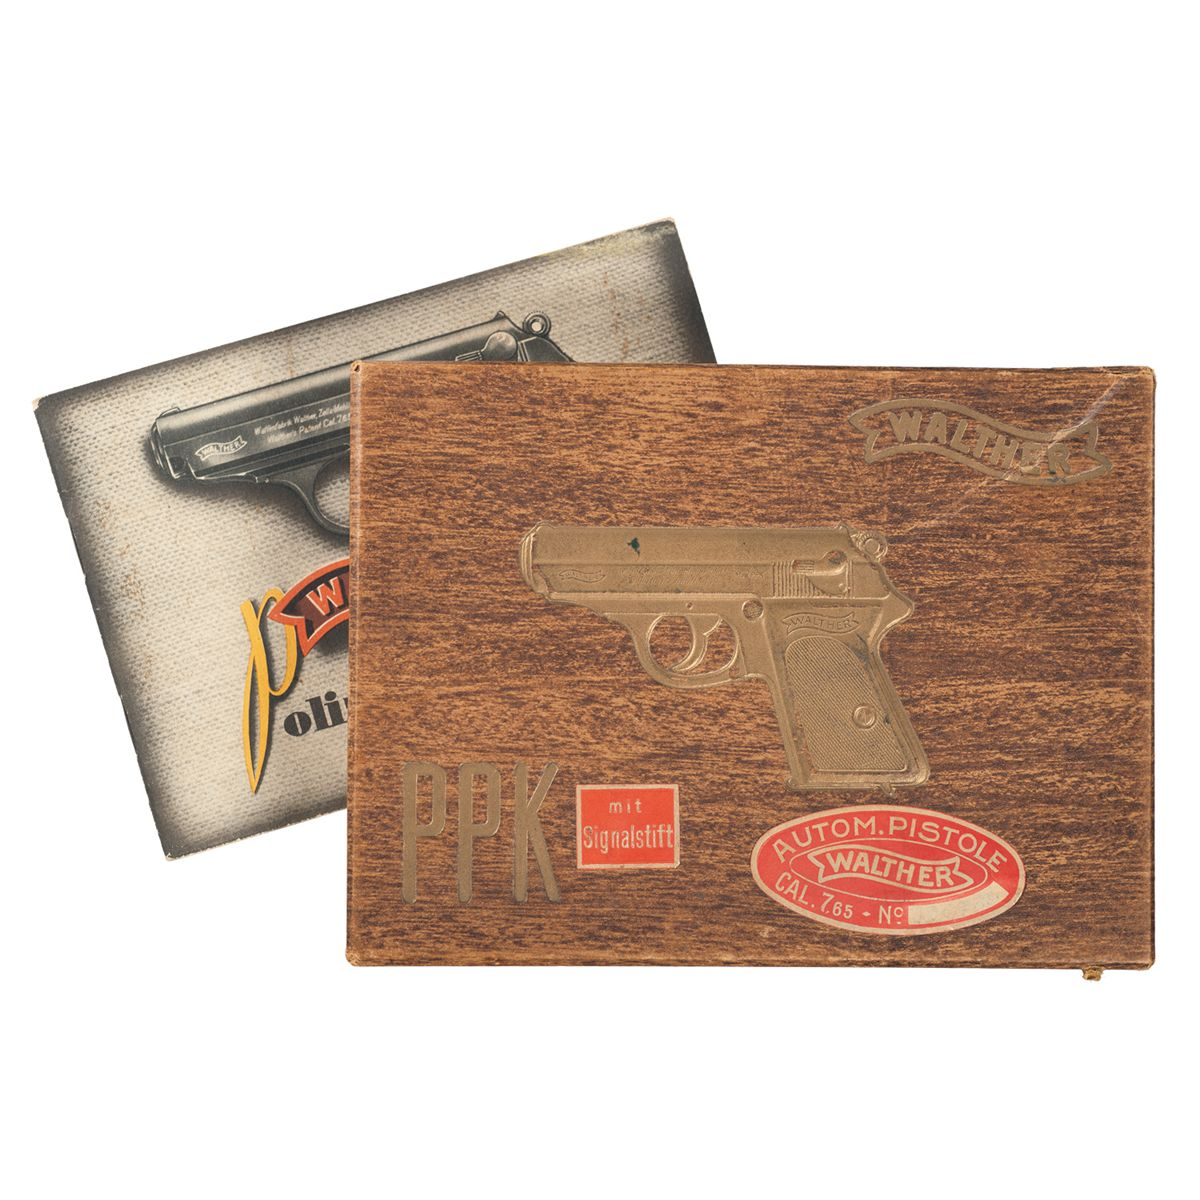 Pre War Walther PPK Box with Manual Tin Rare Box Magazine and Cartridges